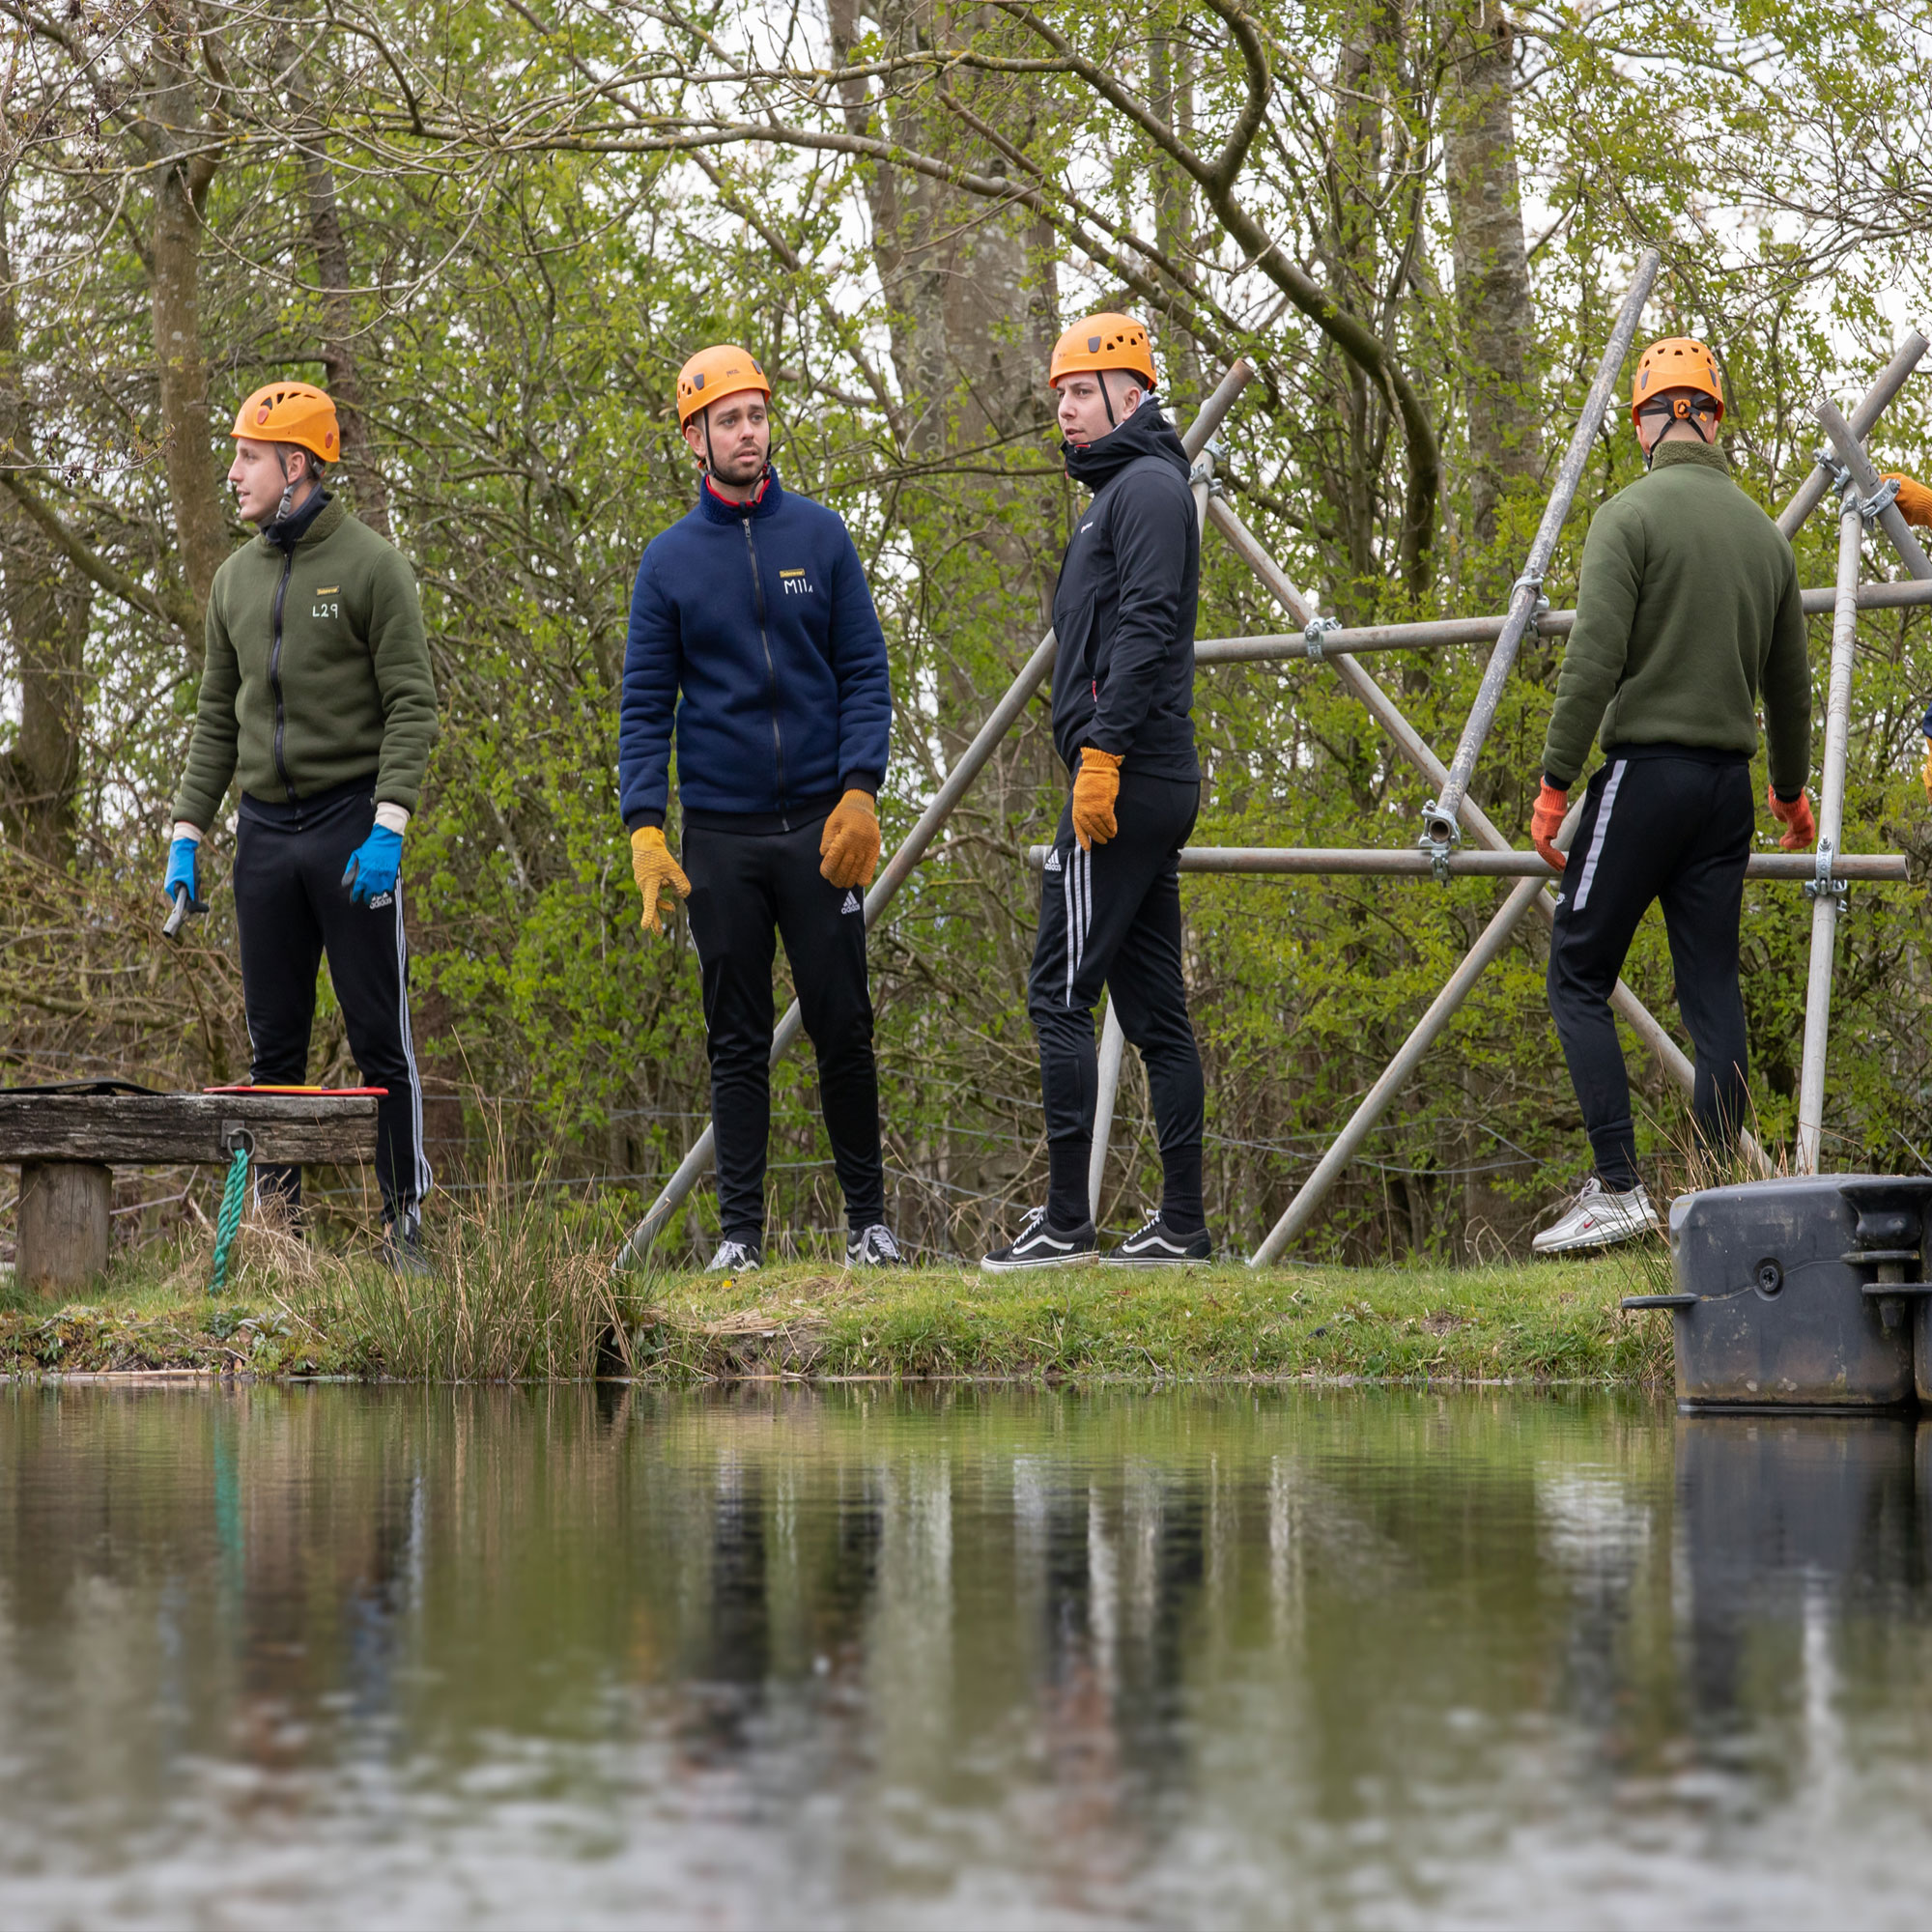 A group of men standing on the side of a lake in hard hats